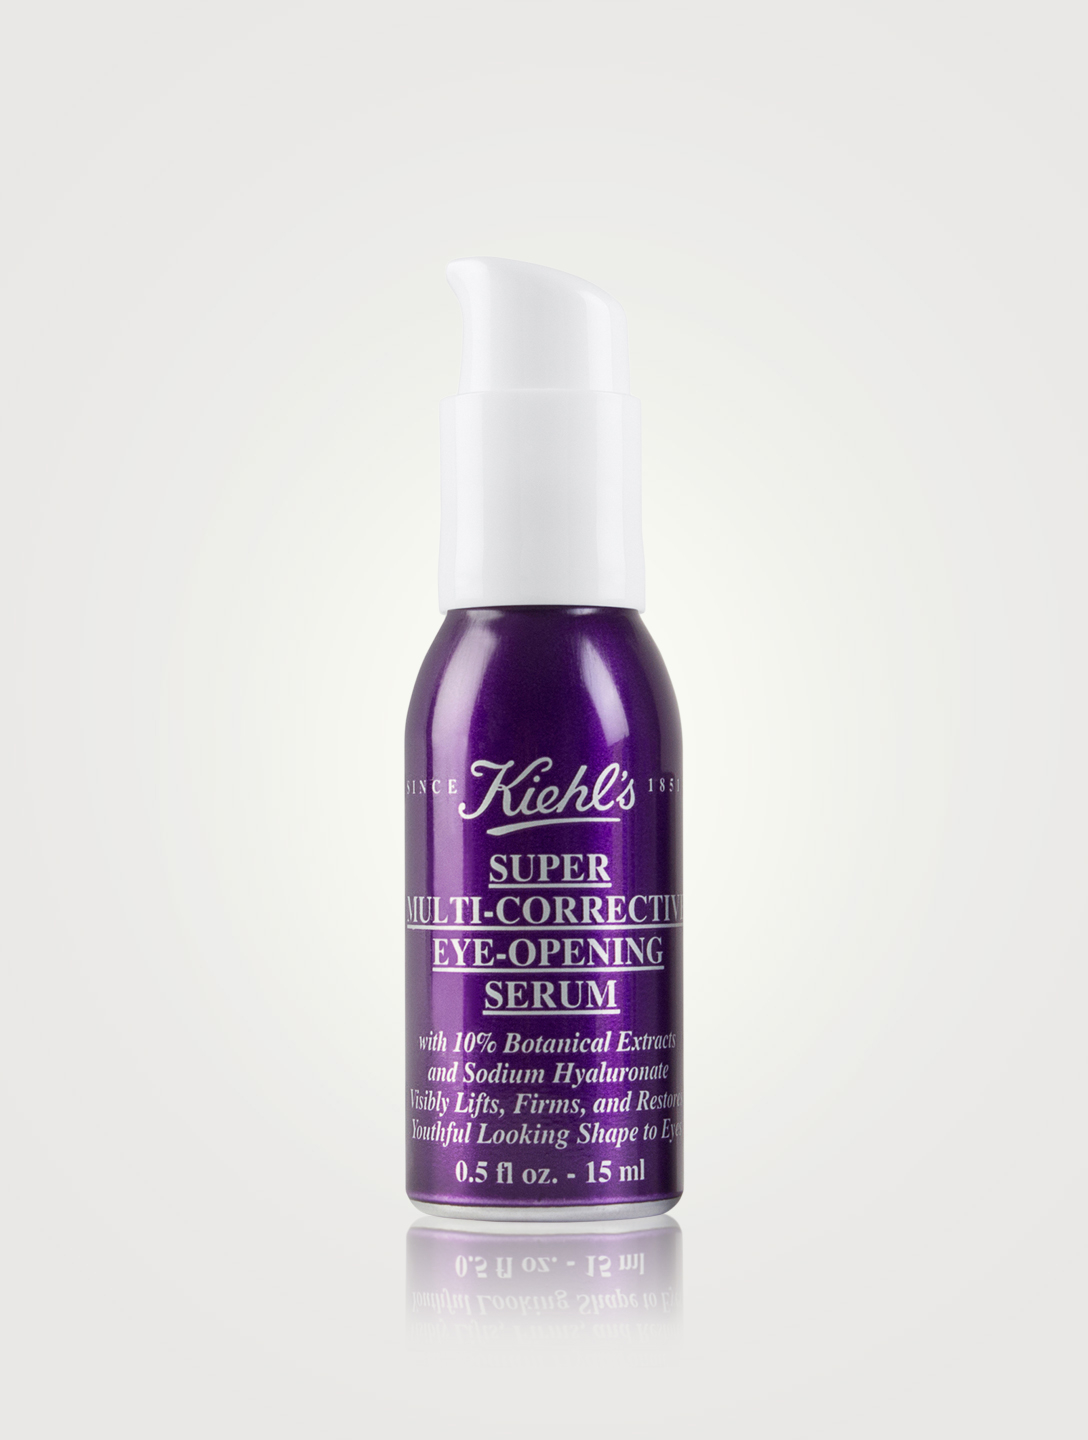 KIEHL'S Super Multi-Corrective Eye-Opening Serum Beauty